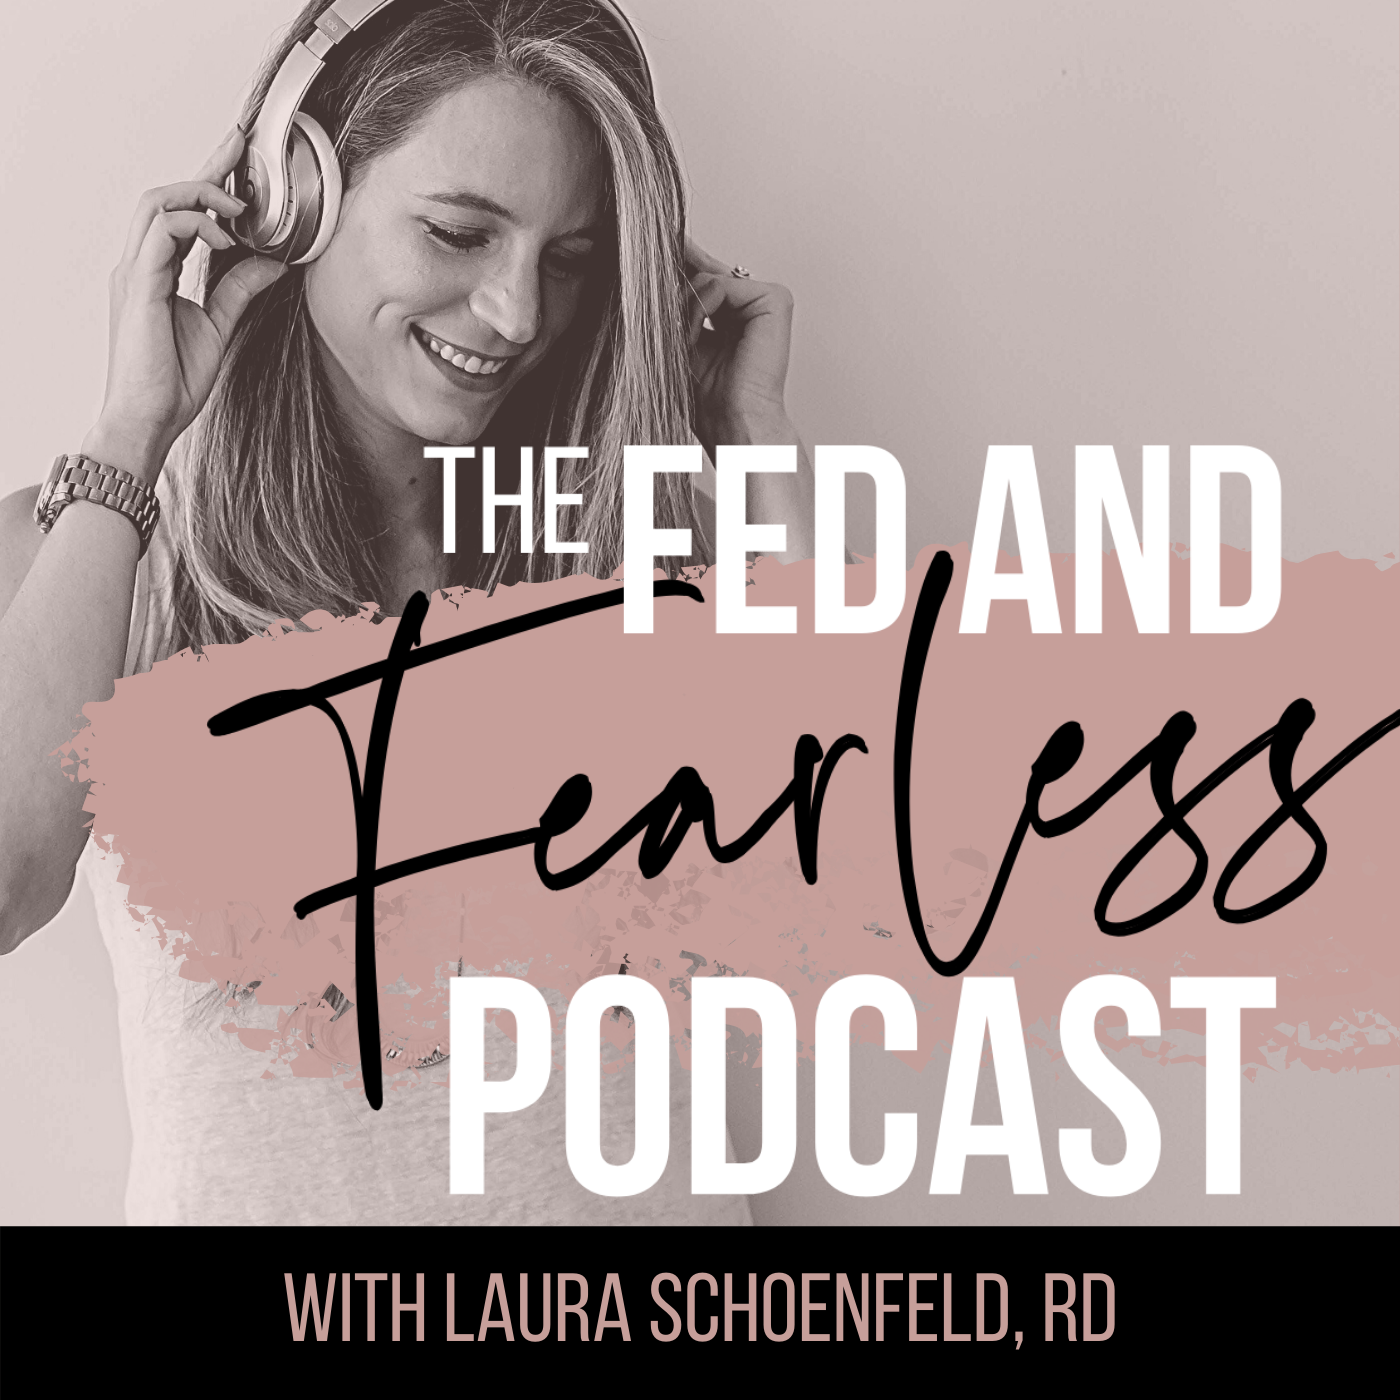 The Fed and Fearless Podcast show art